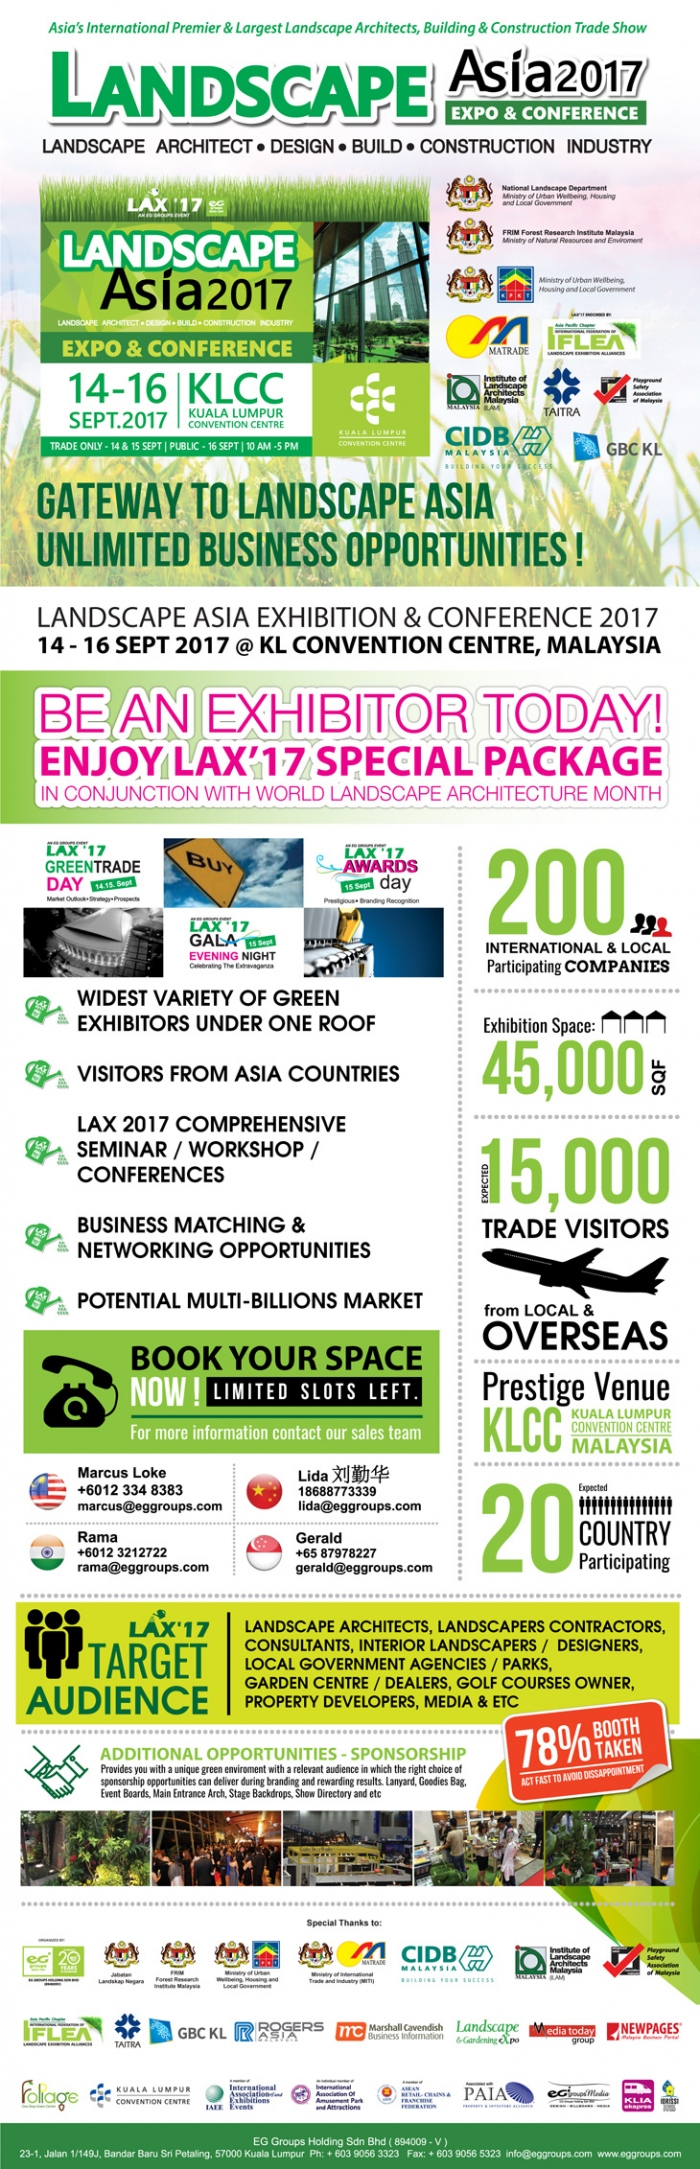 Landscape Asia Expo & Conference 2017